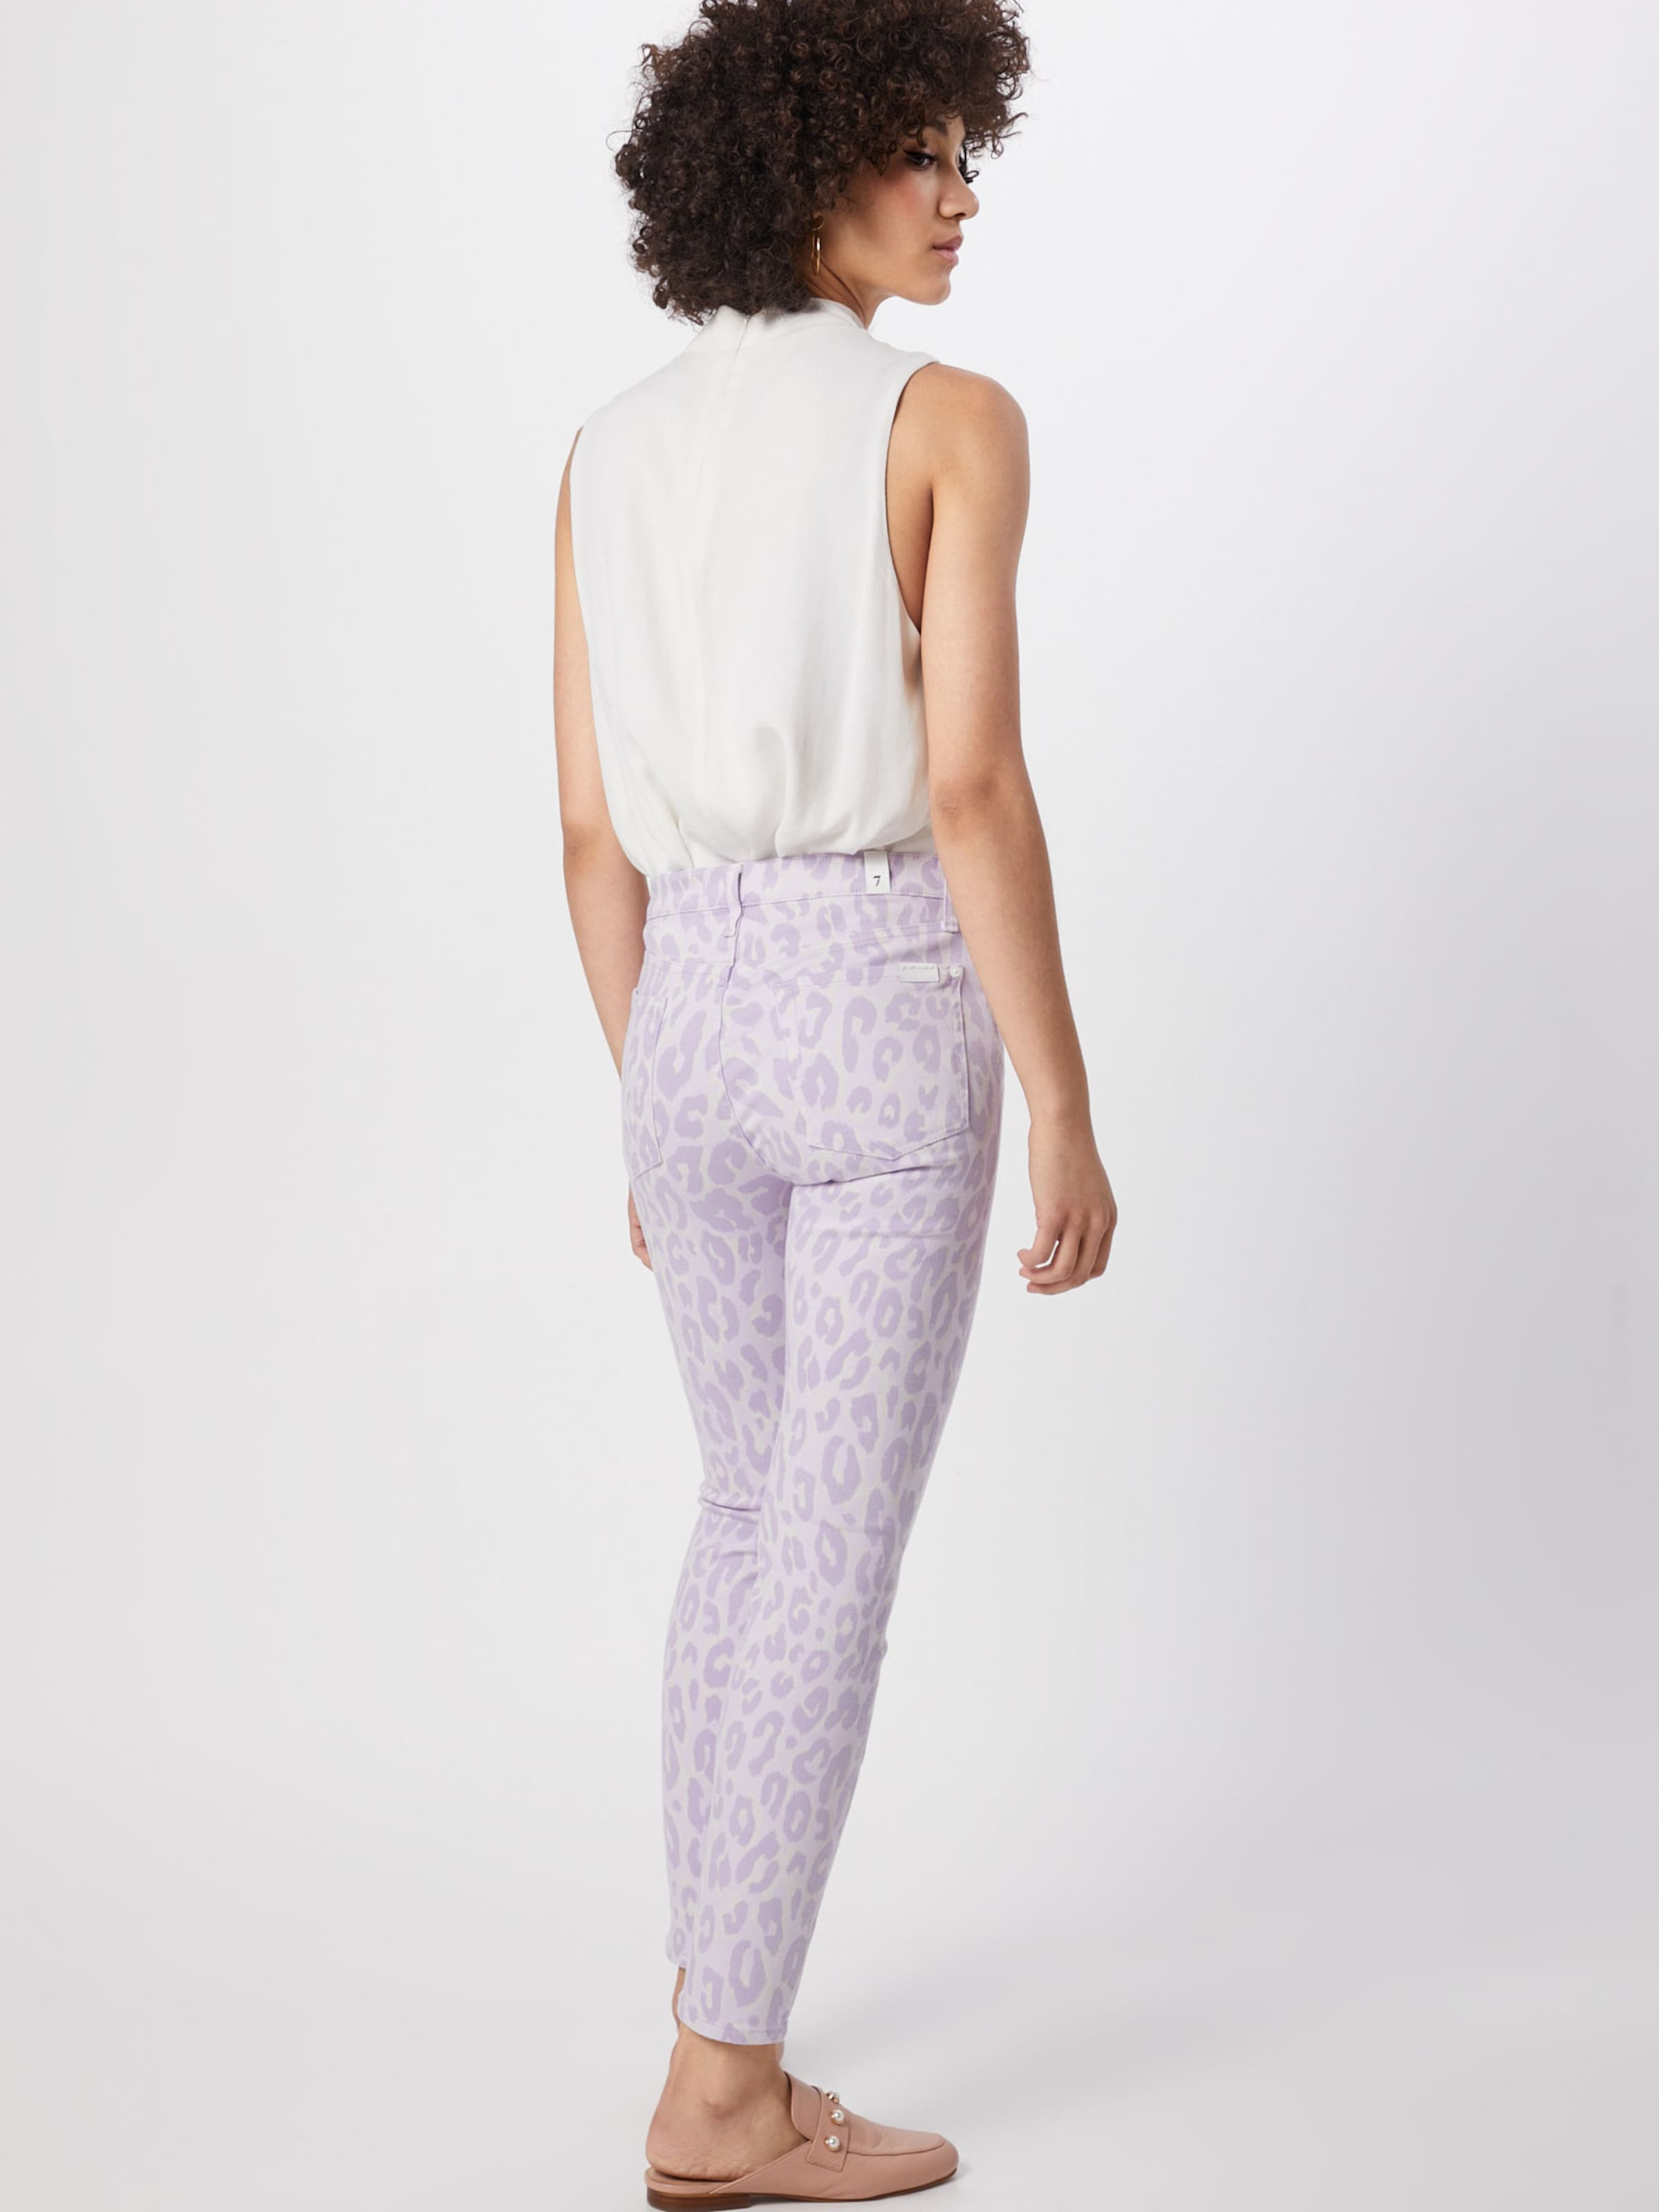 All Skinny Crop' For Jeans In Lila Mankind 'the 7 OZXiukP